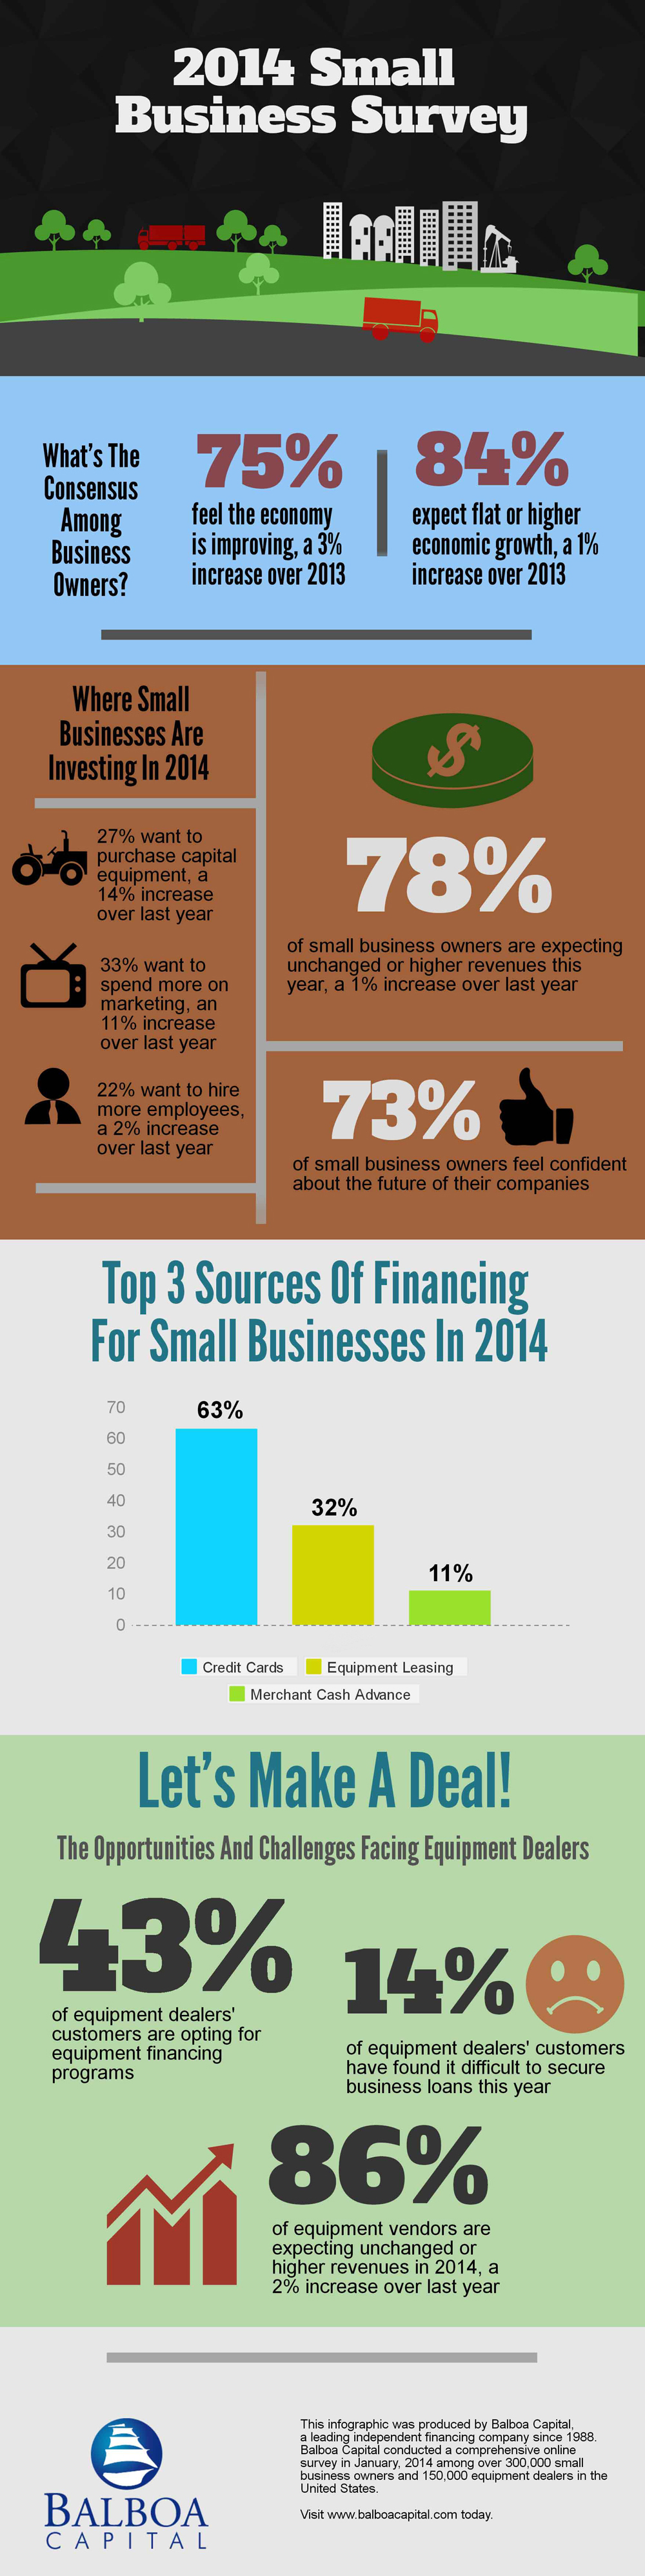 2014 Small Business Survey Infographic